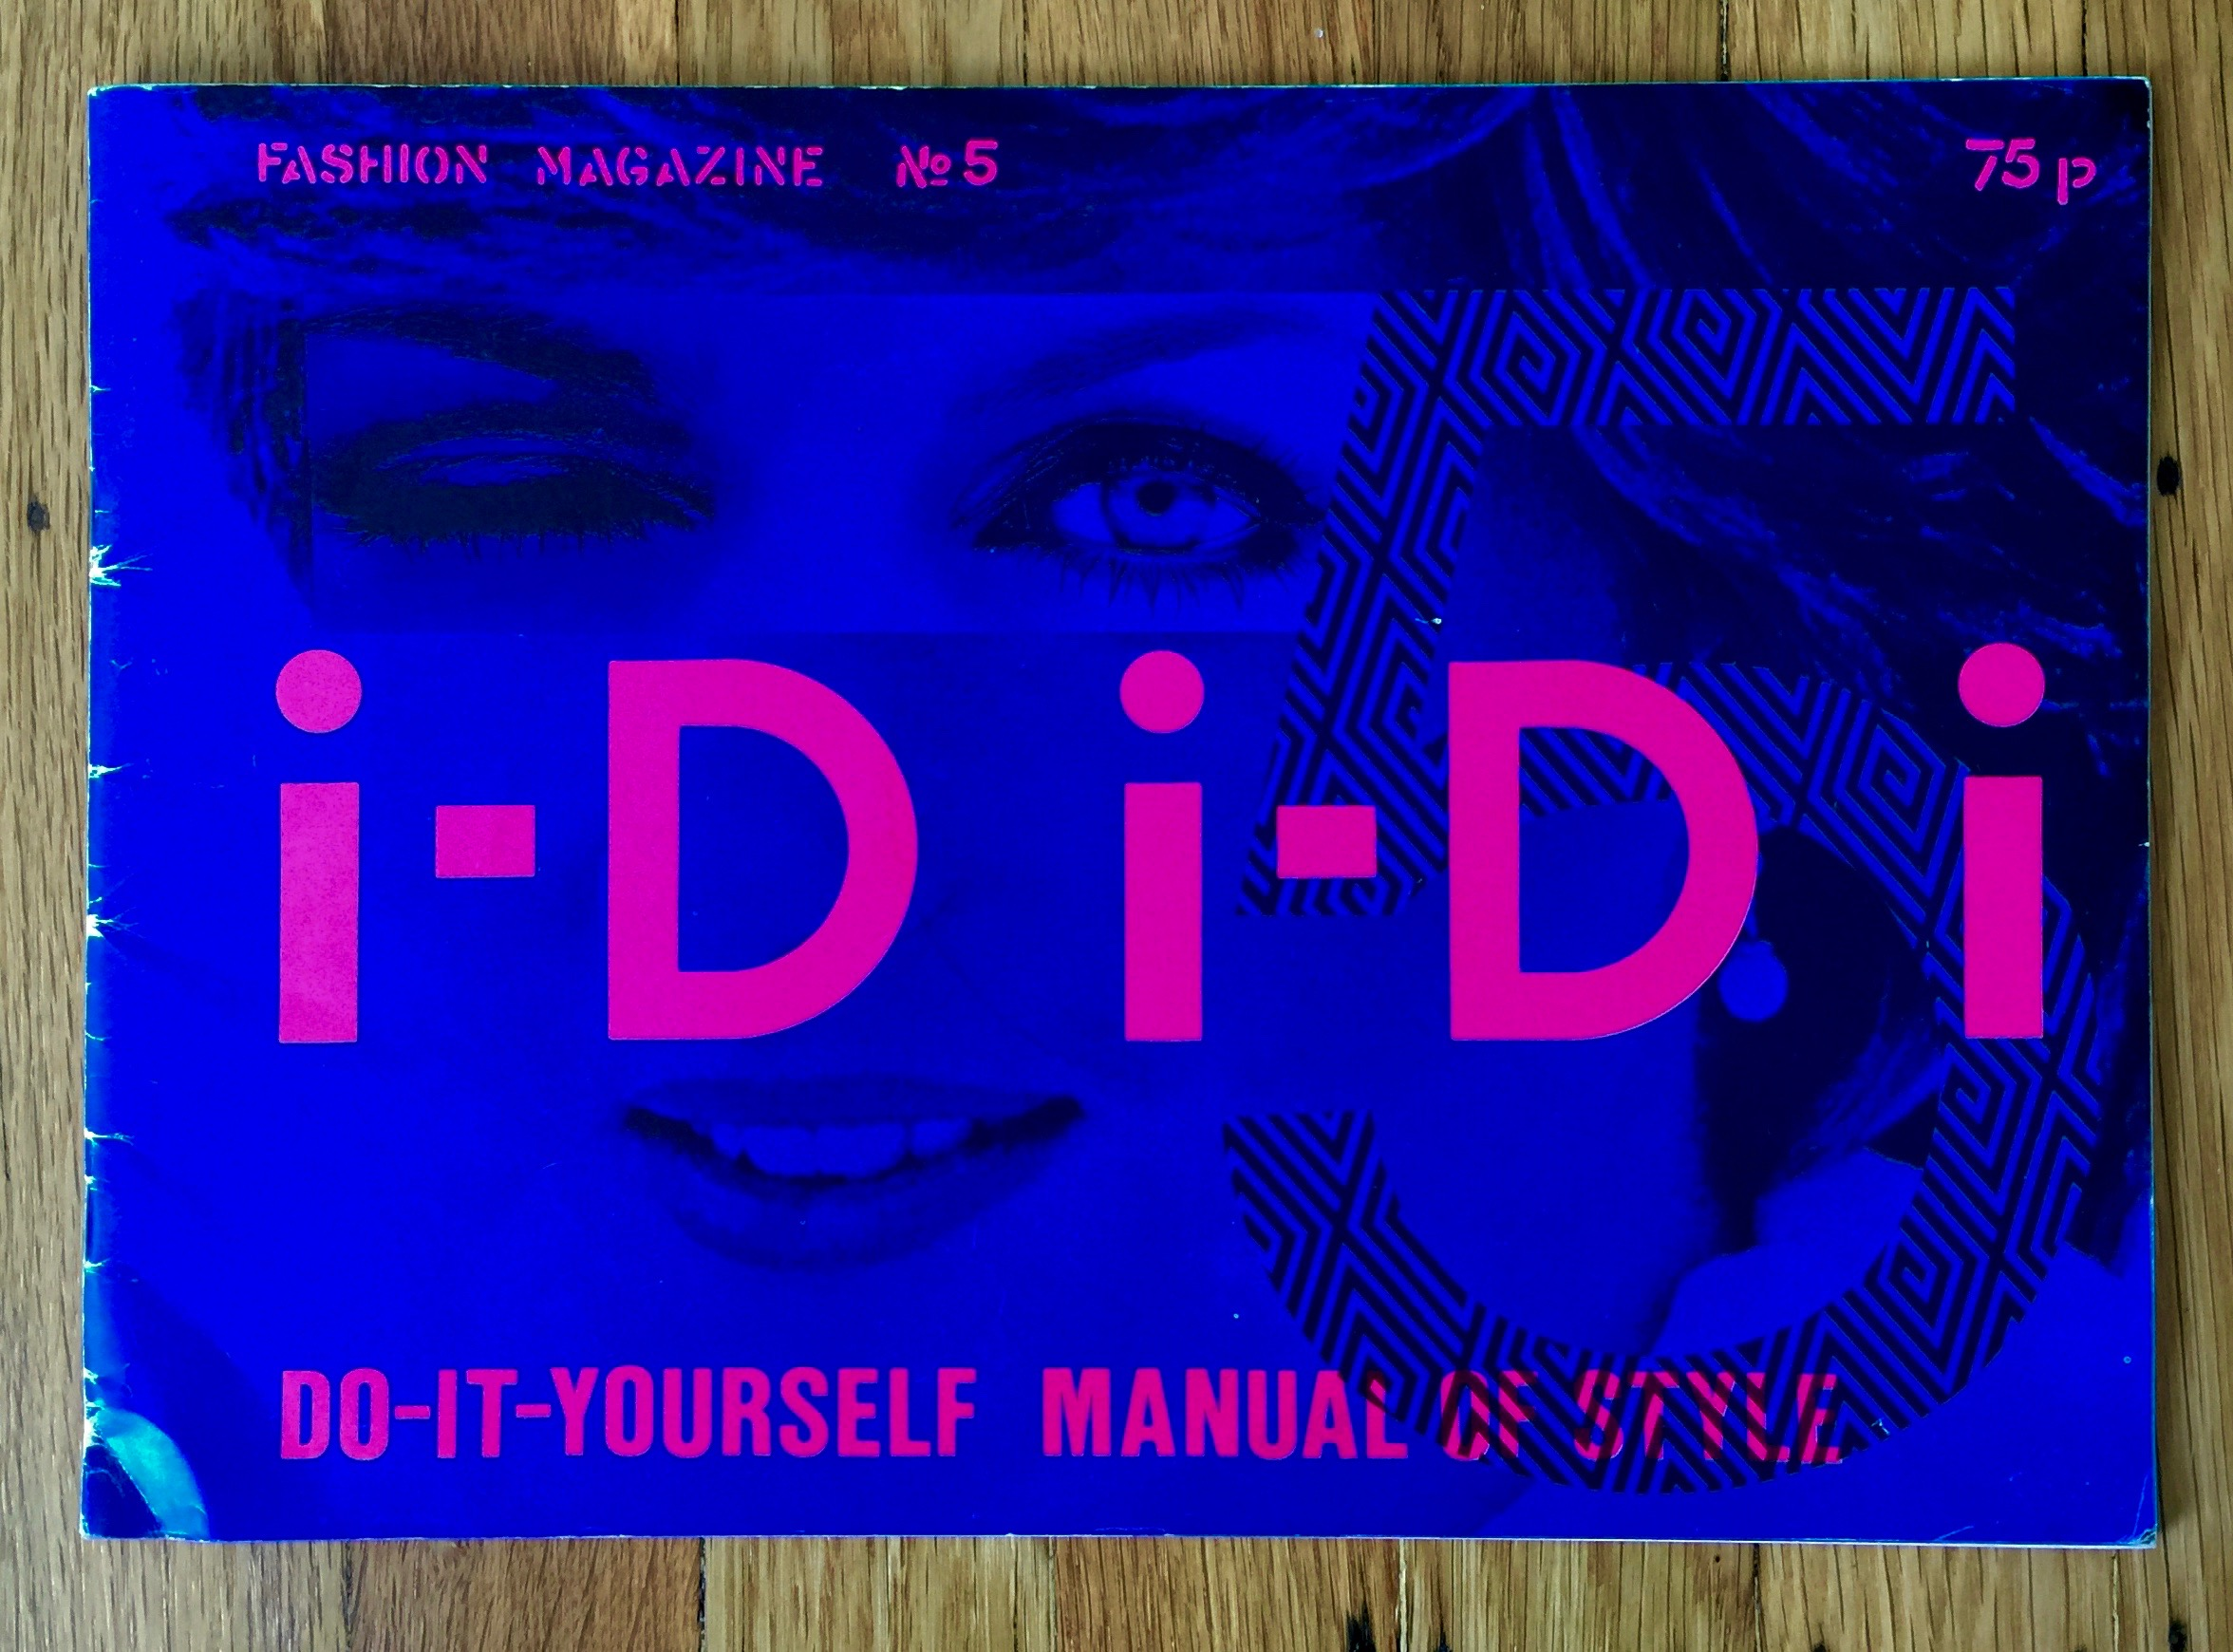 I-D Magazine Issue No.5 Do-it-yourself Manual of Style (aka the Lady Di issue)